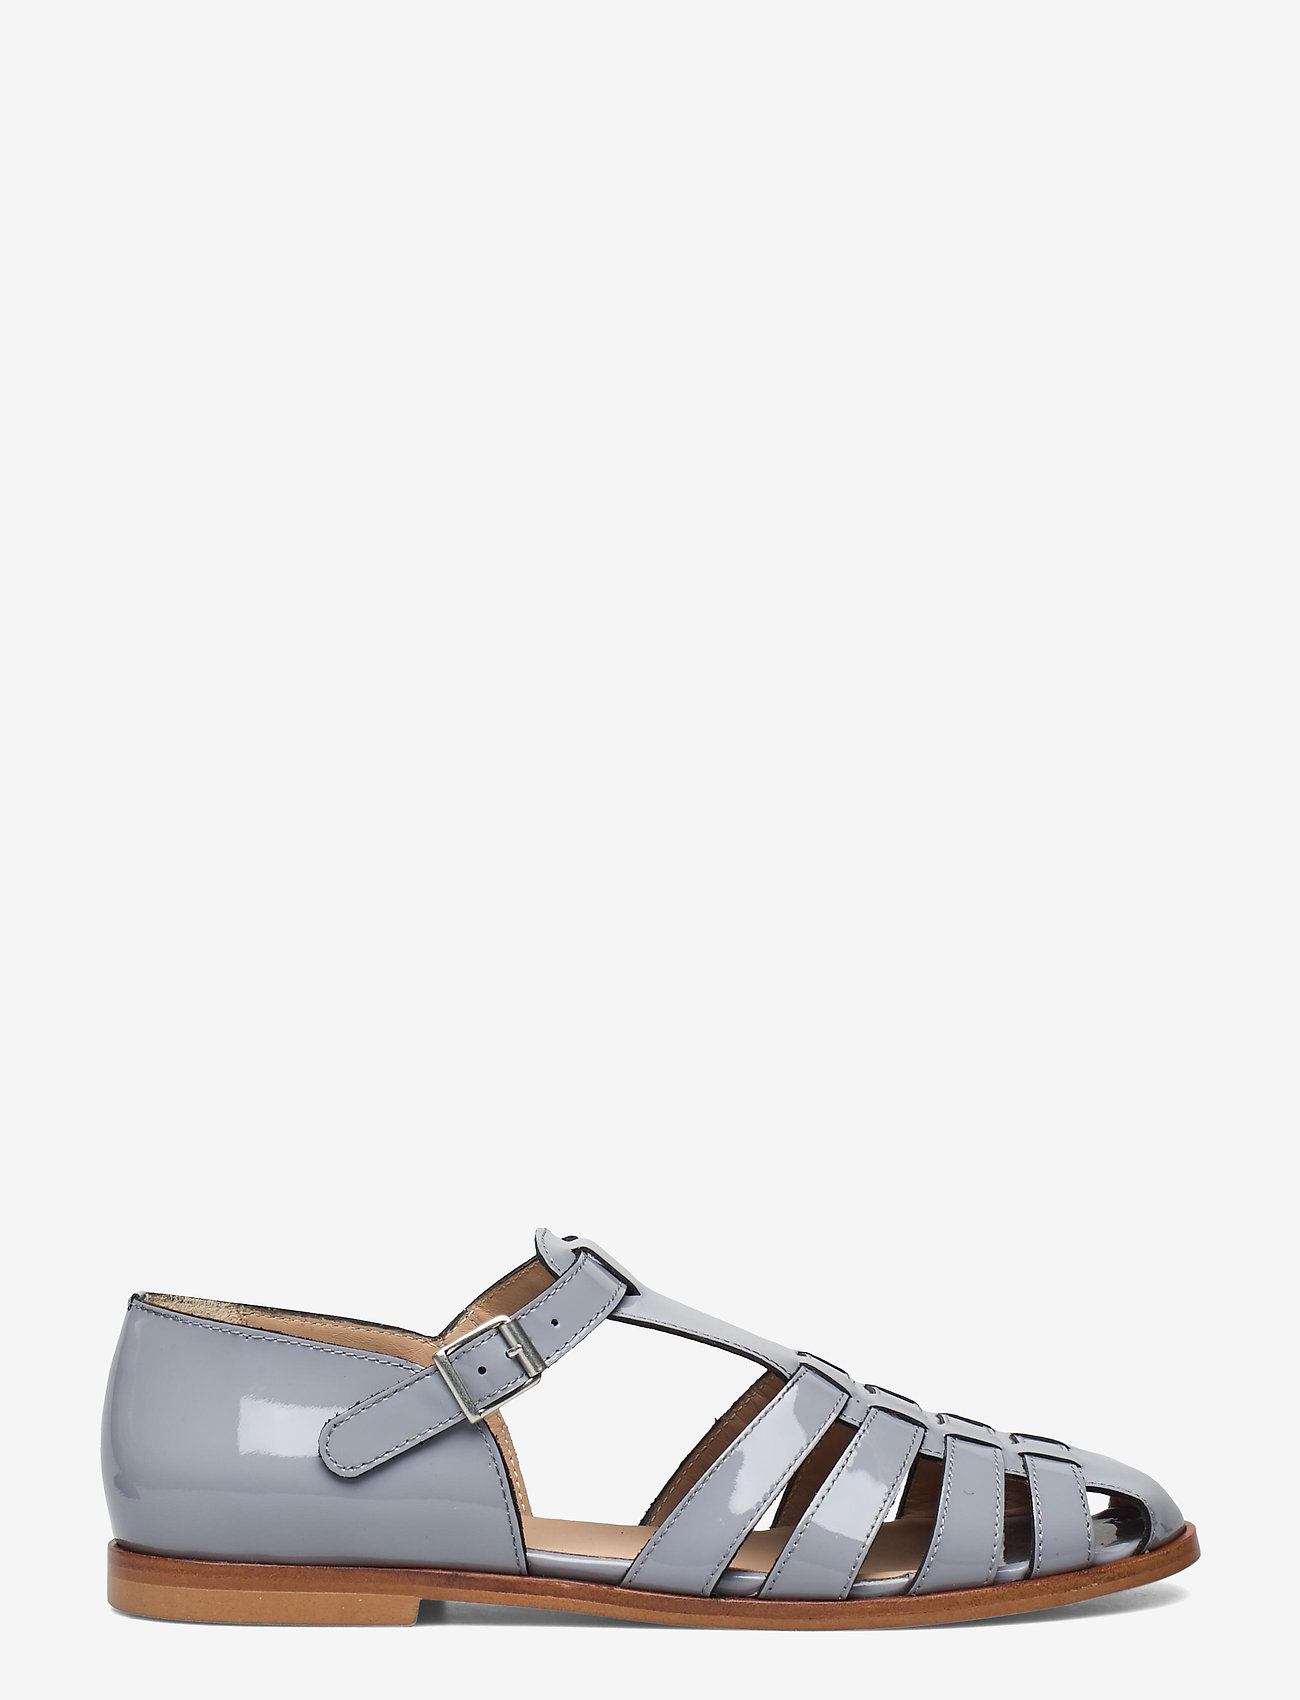 ANGULUS - Sandals - flat - closed toe - op - flache sandalen - 2350 greyblue - 1